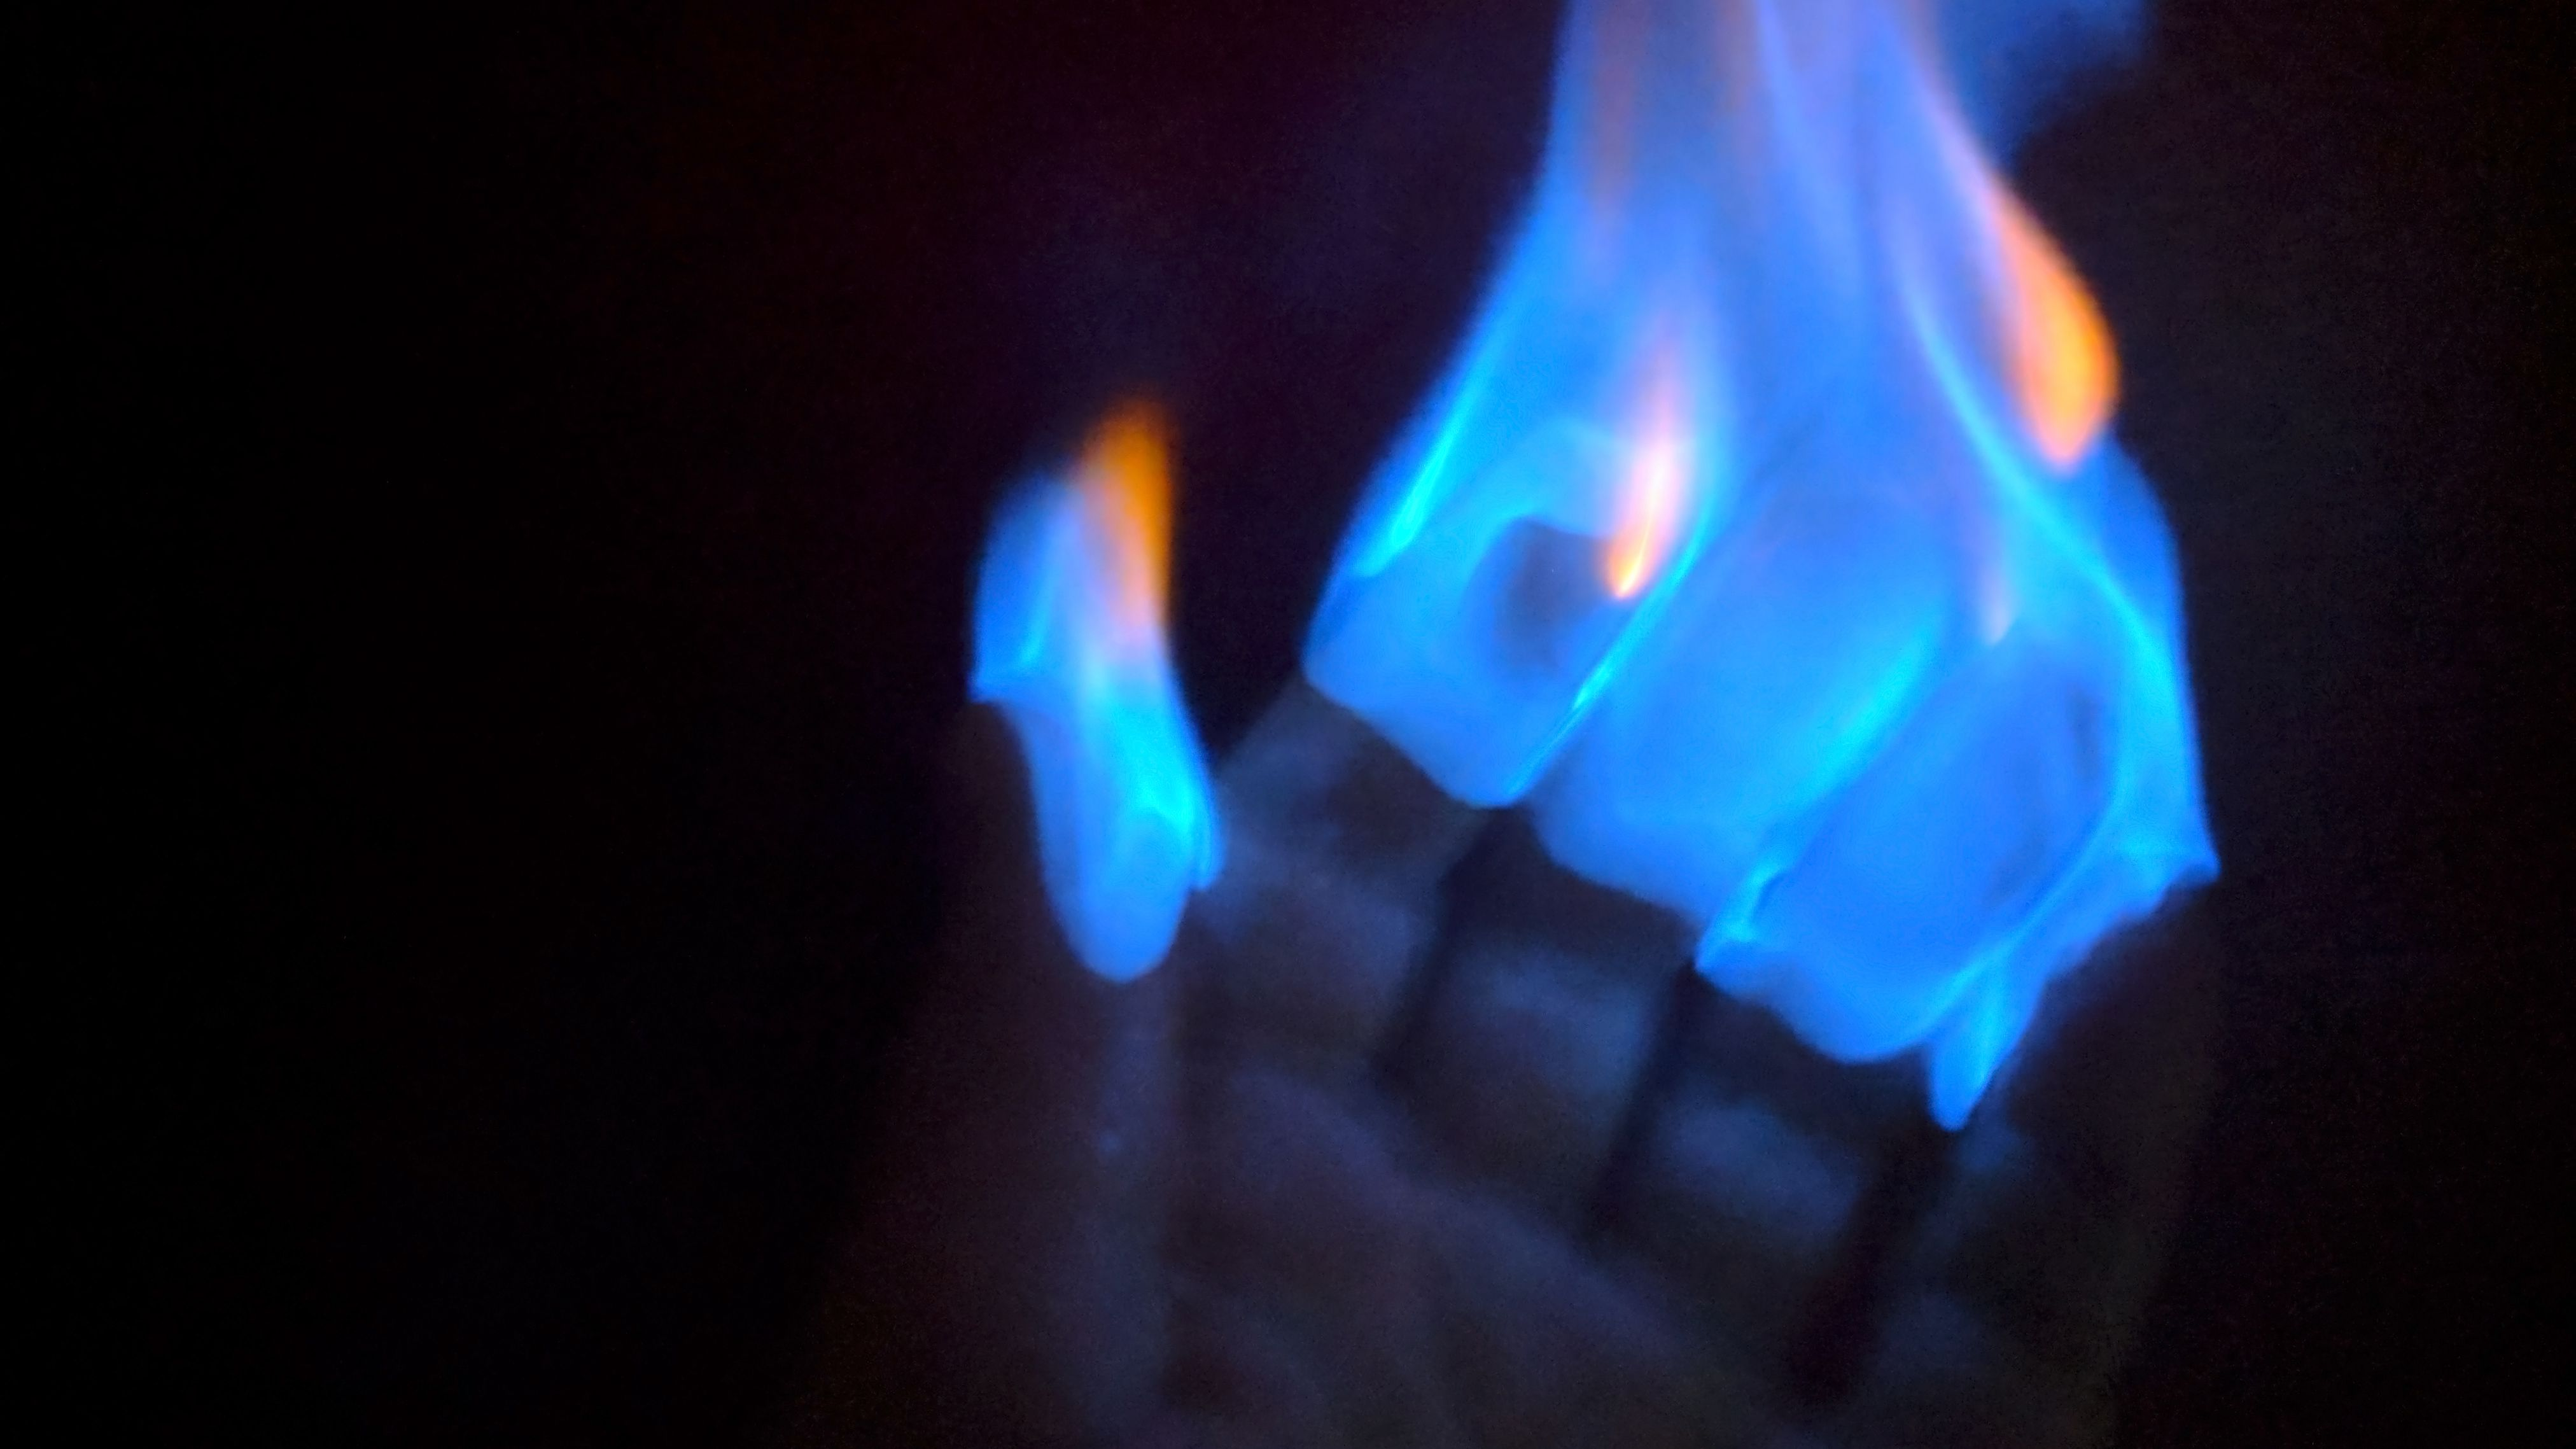 Hand Sanitizer Fire Project - Instructions